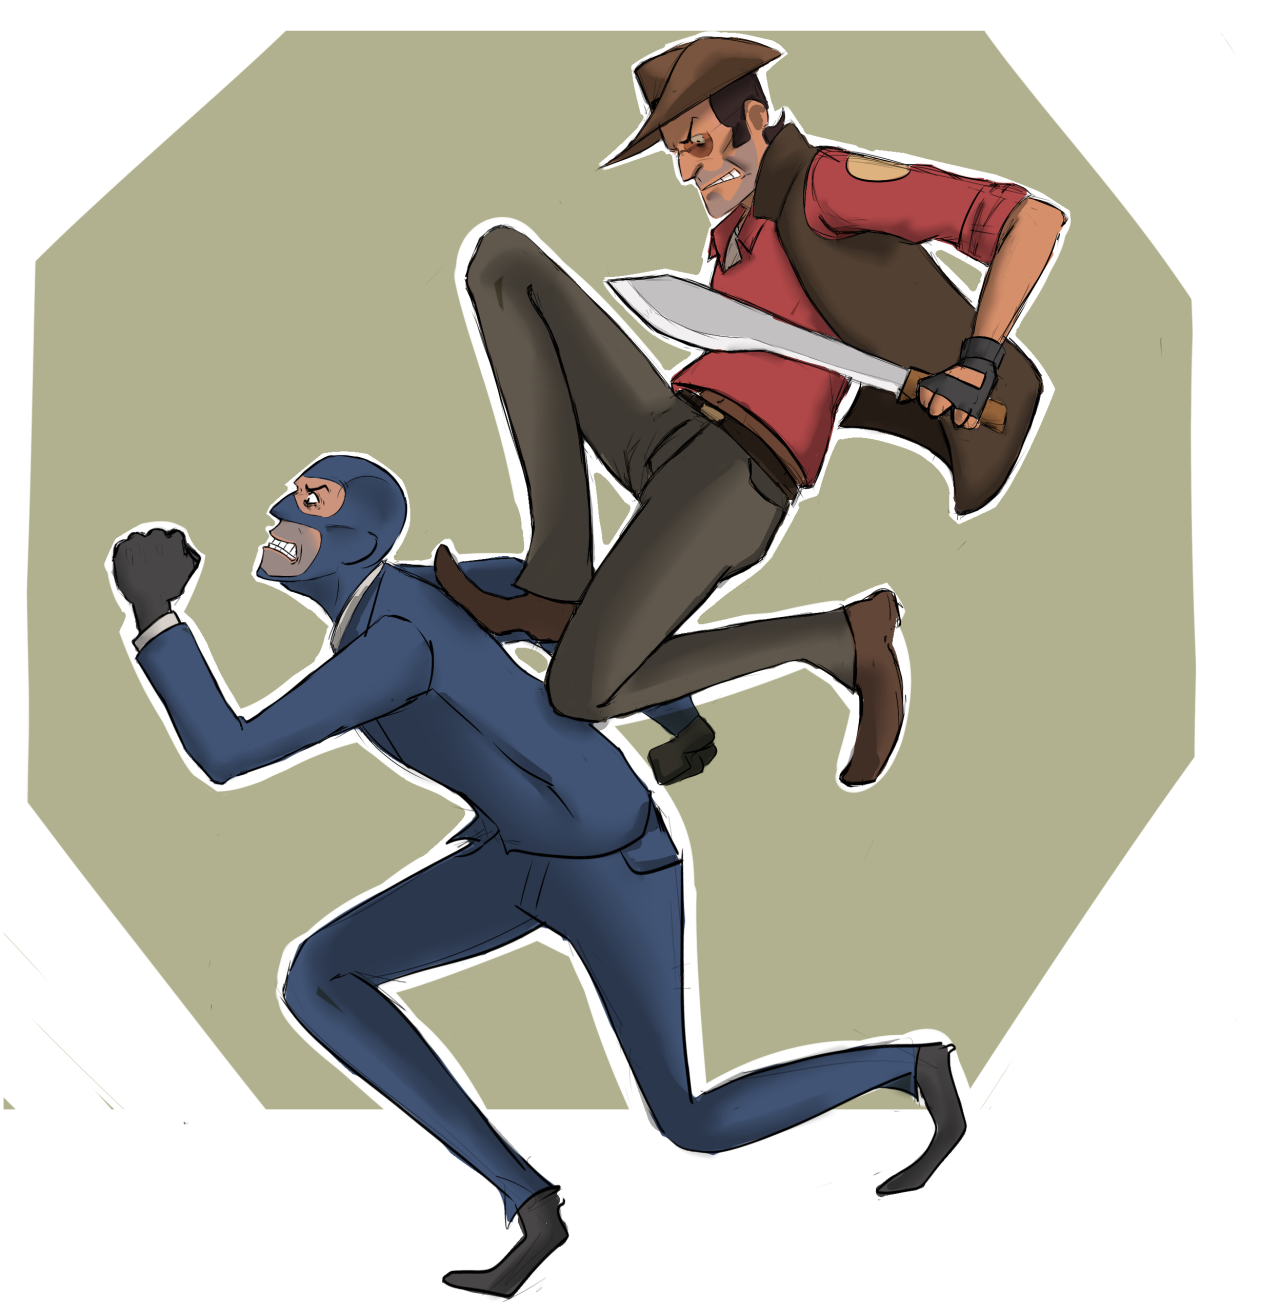 Tf2 Spy And Sniper Tumblr Team Fortress 2 Team Fortress Team Fortess 2